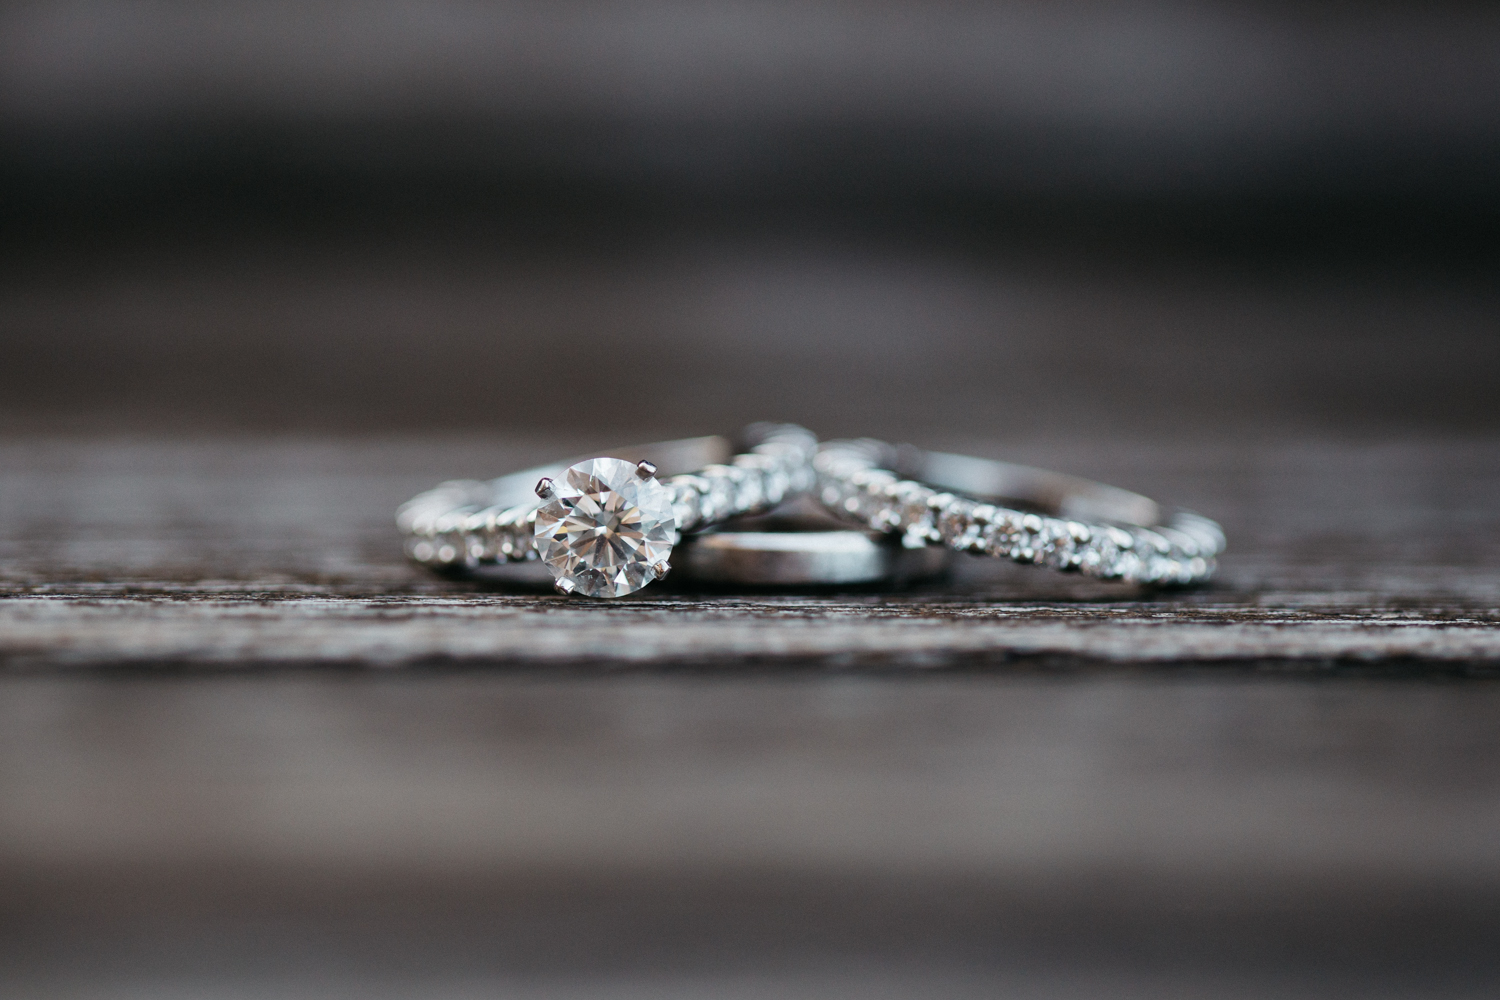 Ashley-reed-photography-pittsburgh-engagement-engagementphotography-engagementphotographer-stationsquare-statio-square-pittsburghengagementphotography-39.jpg